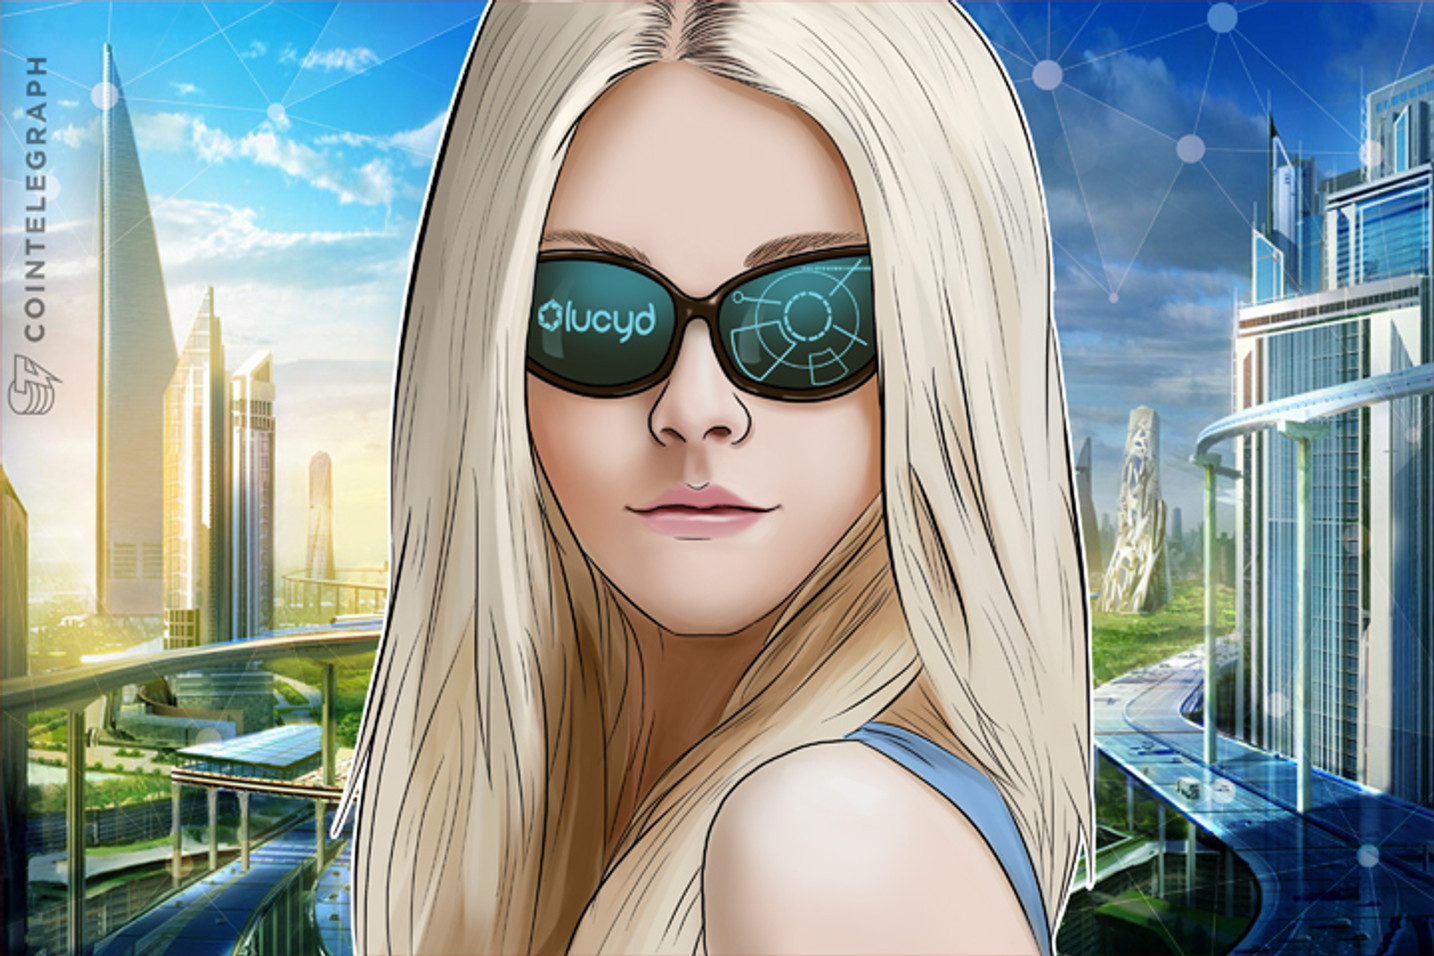 Lucyd Building Blockchain-fueled Smartglasses With Mass Appeal